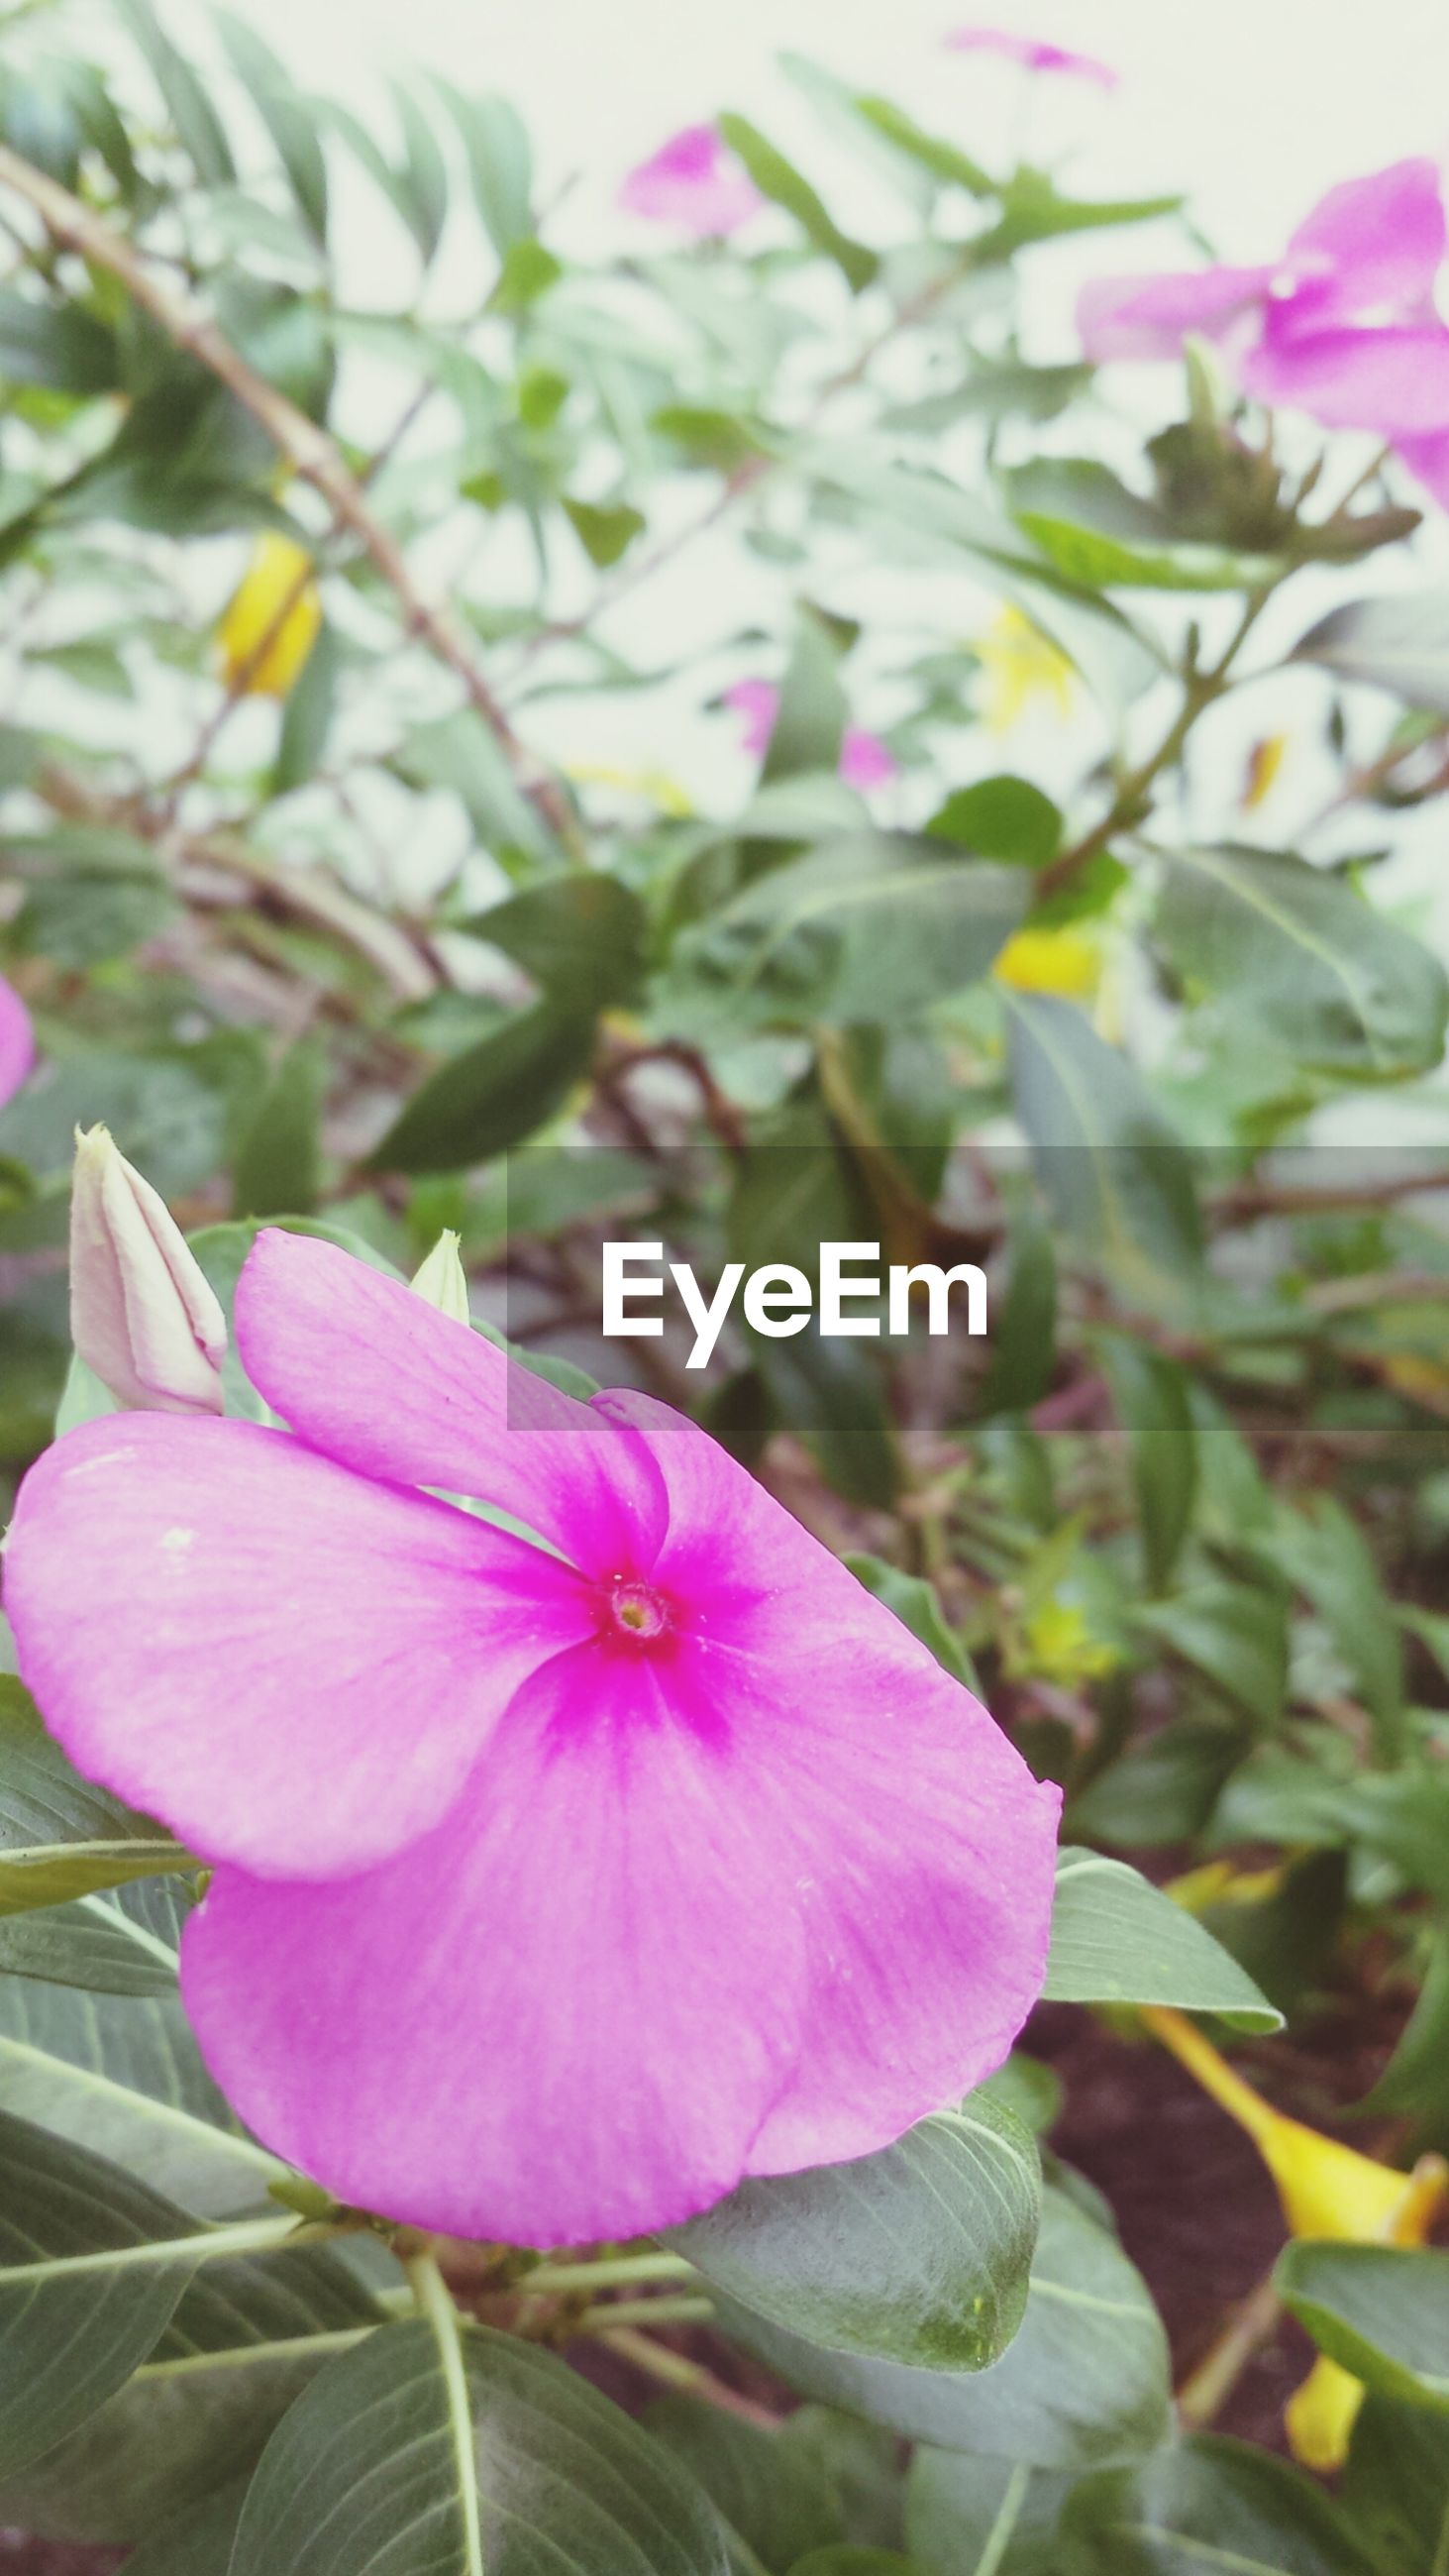 flower, freshness, petal, fragility, flower head, growth, beauty in nature, purple, close-up, blooming, pink color, nature, focus on foreground, plant, in bloom, leaf, blossom, day, pollen, park - man made space